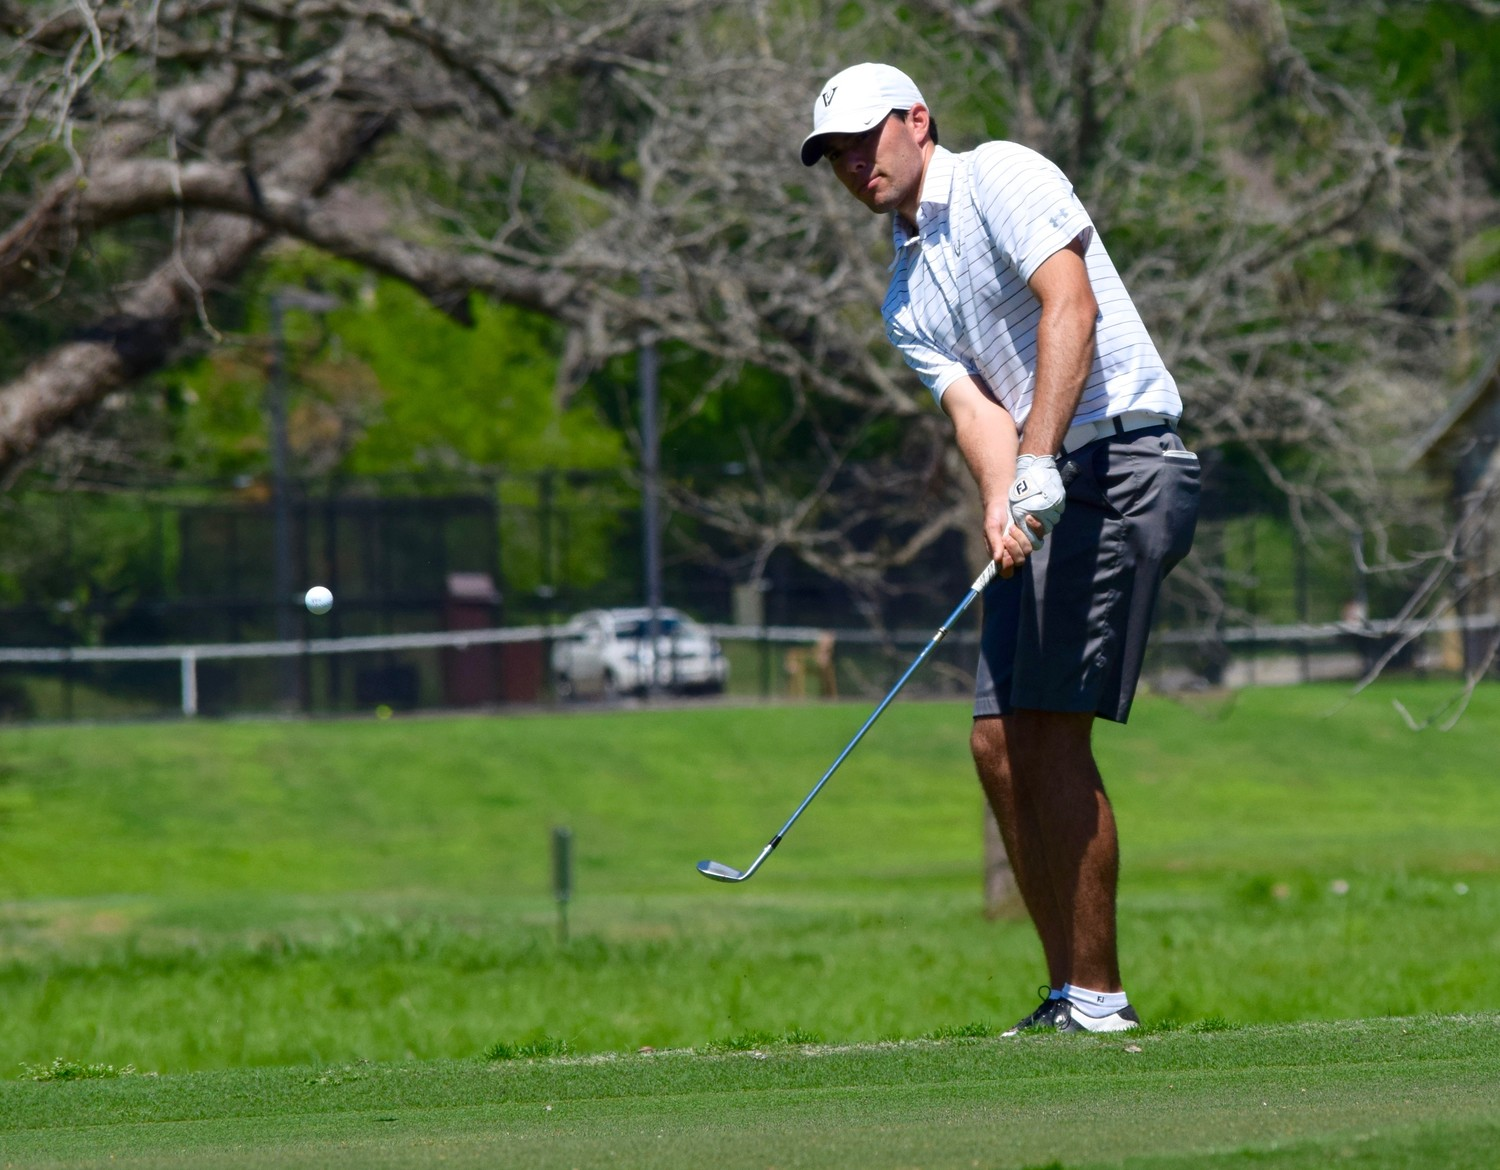 Vandegrift's Brandon Hoff had rounds of 74-75 and finished in a tie for eighth place at the District 25-6A tournament.